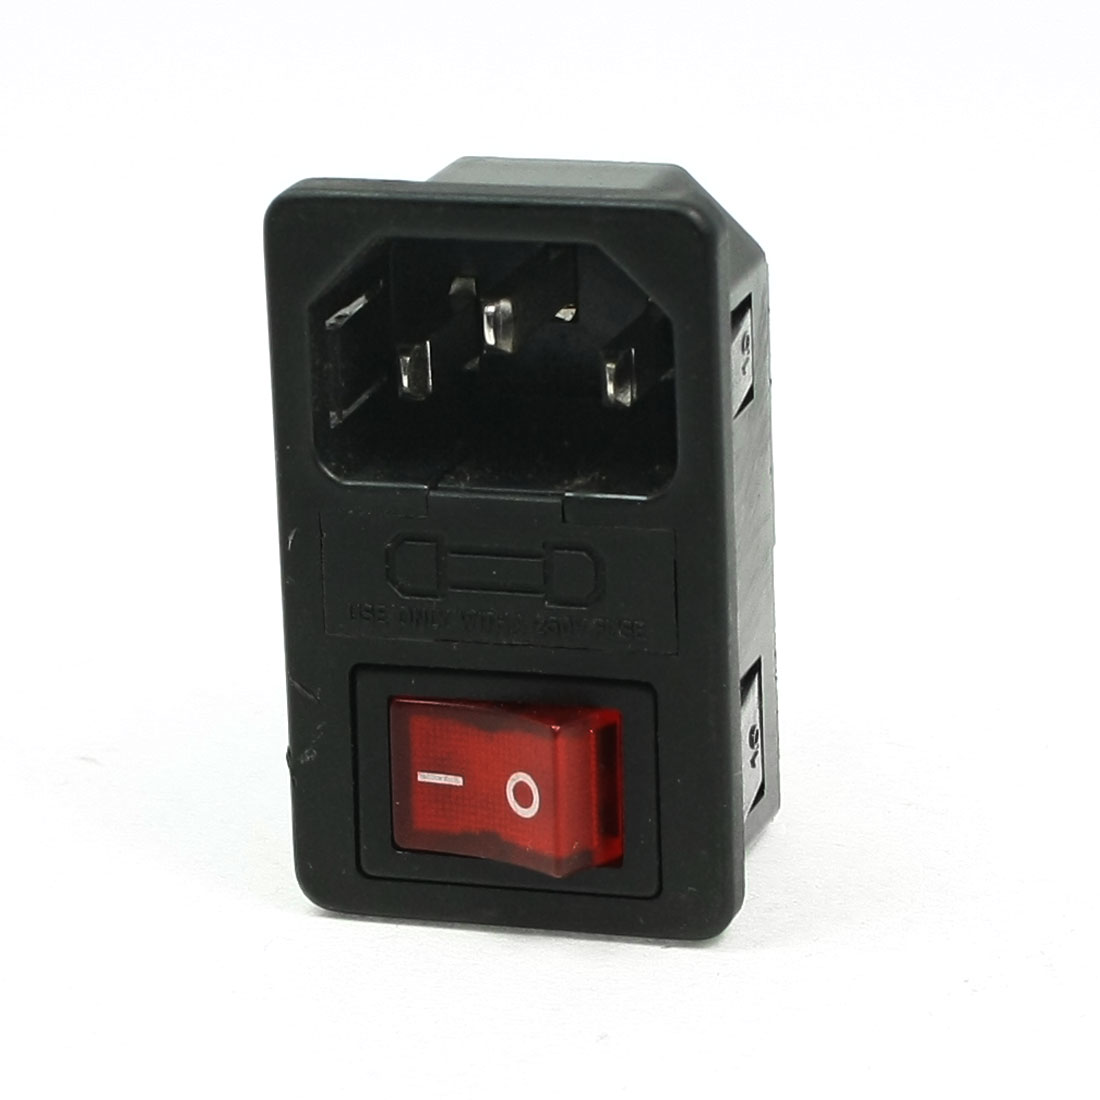 AC 250V 10A 4 Terminal Red Rocker Switch C14 Inlet Male Power Socket